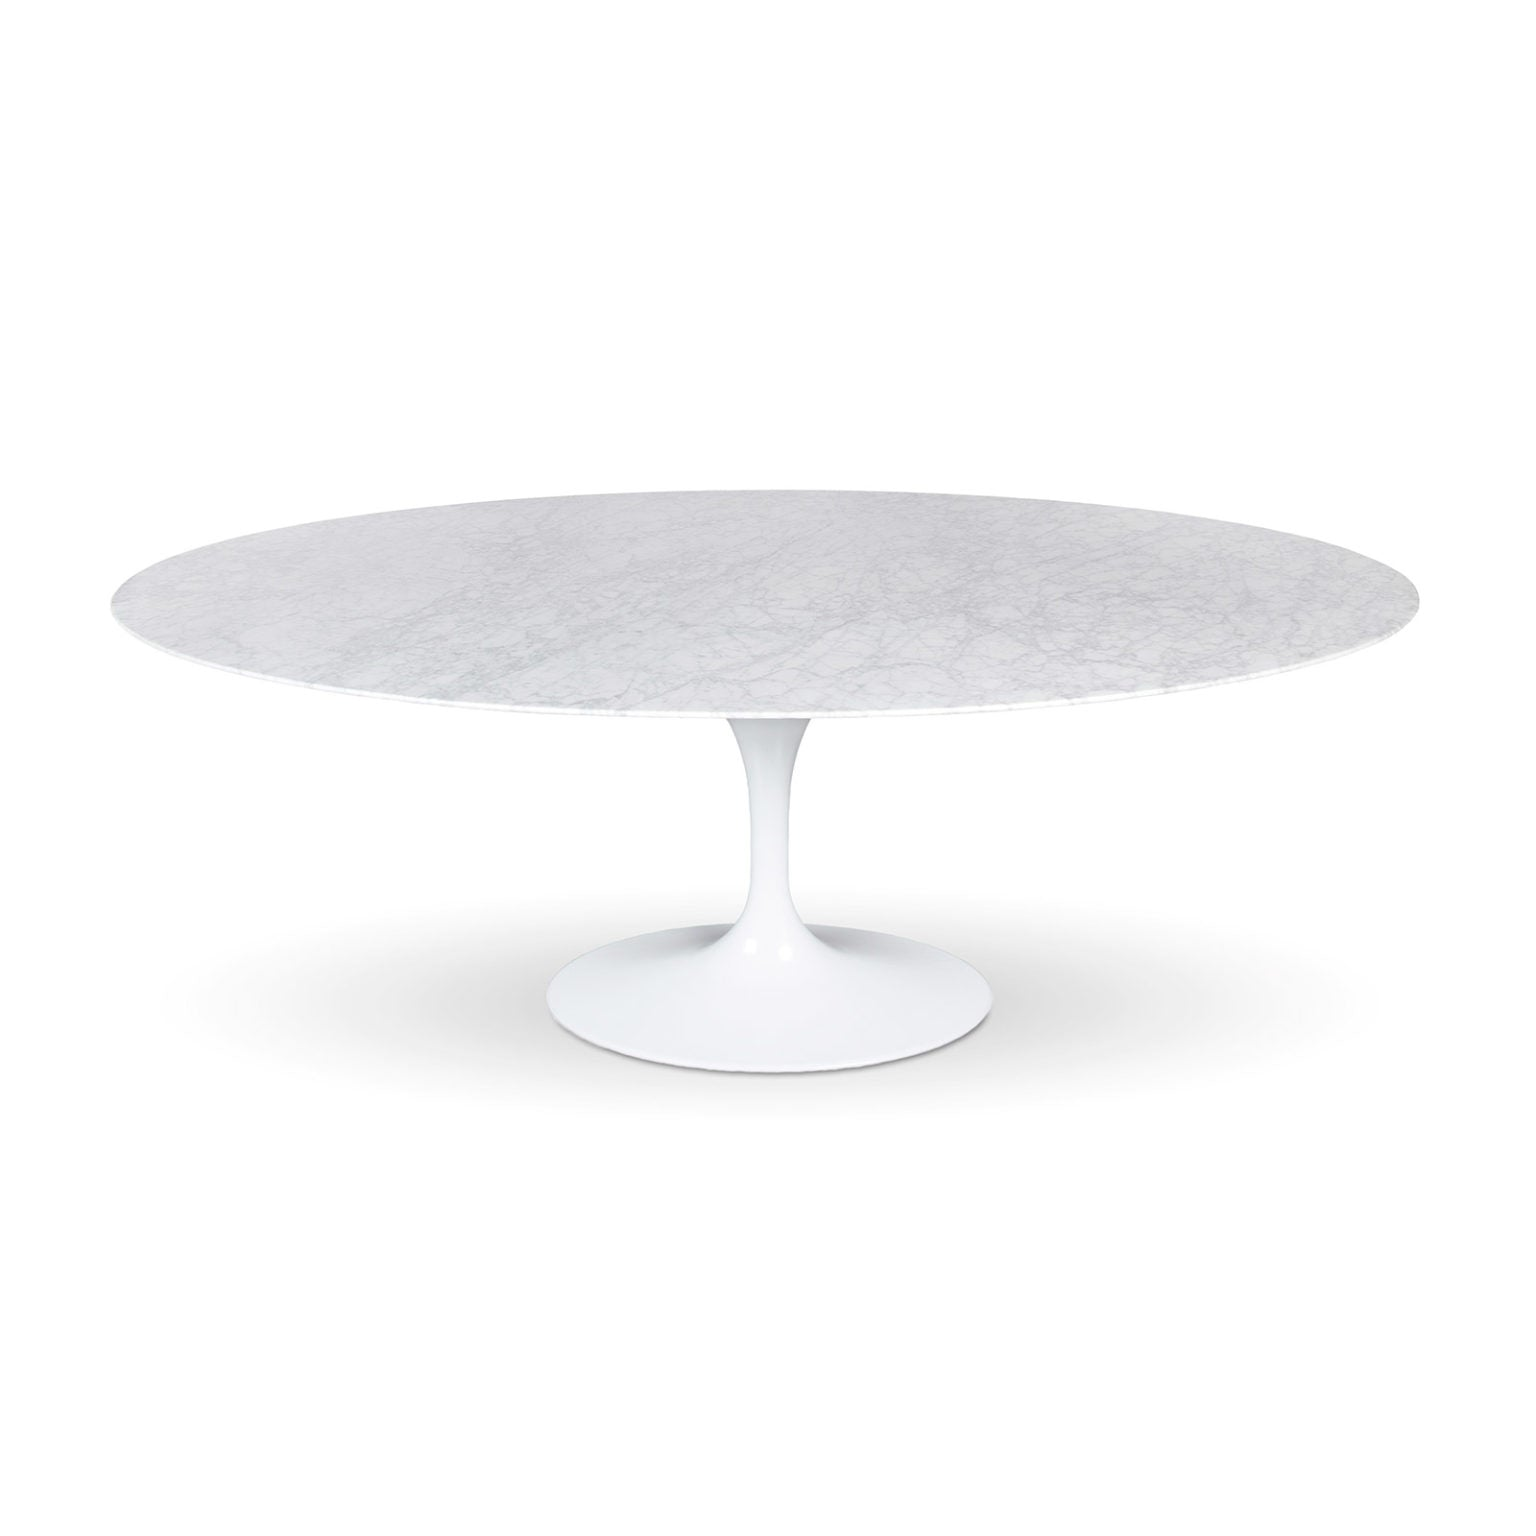 Flute Condo Size Oval Dining Table with Marble Top